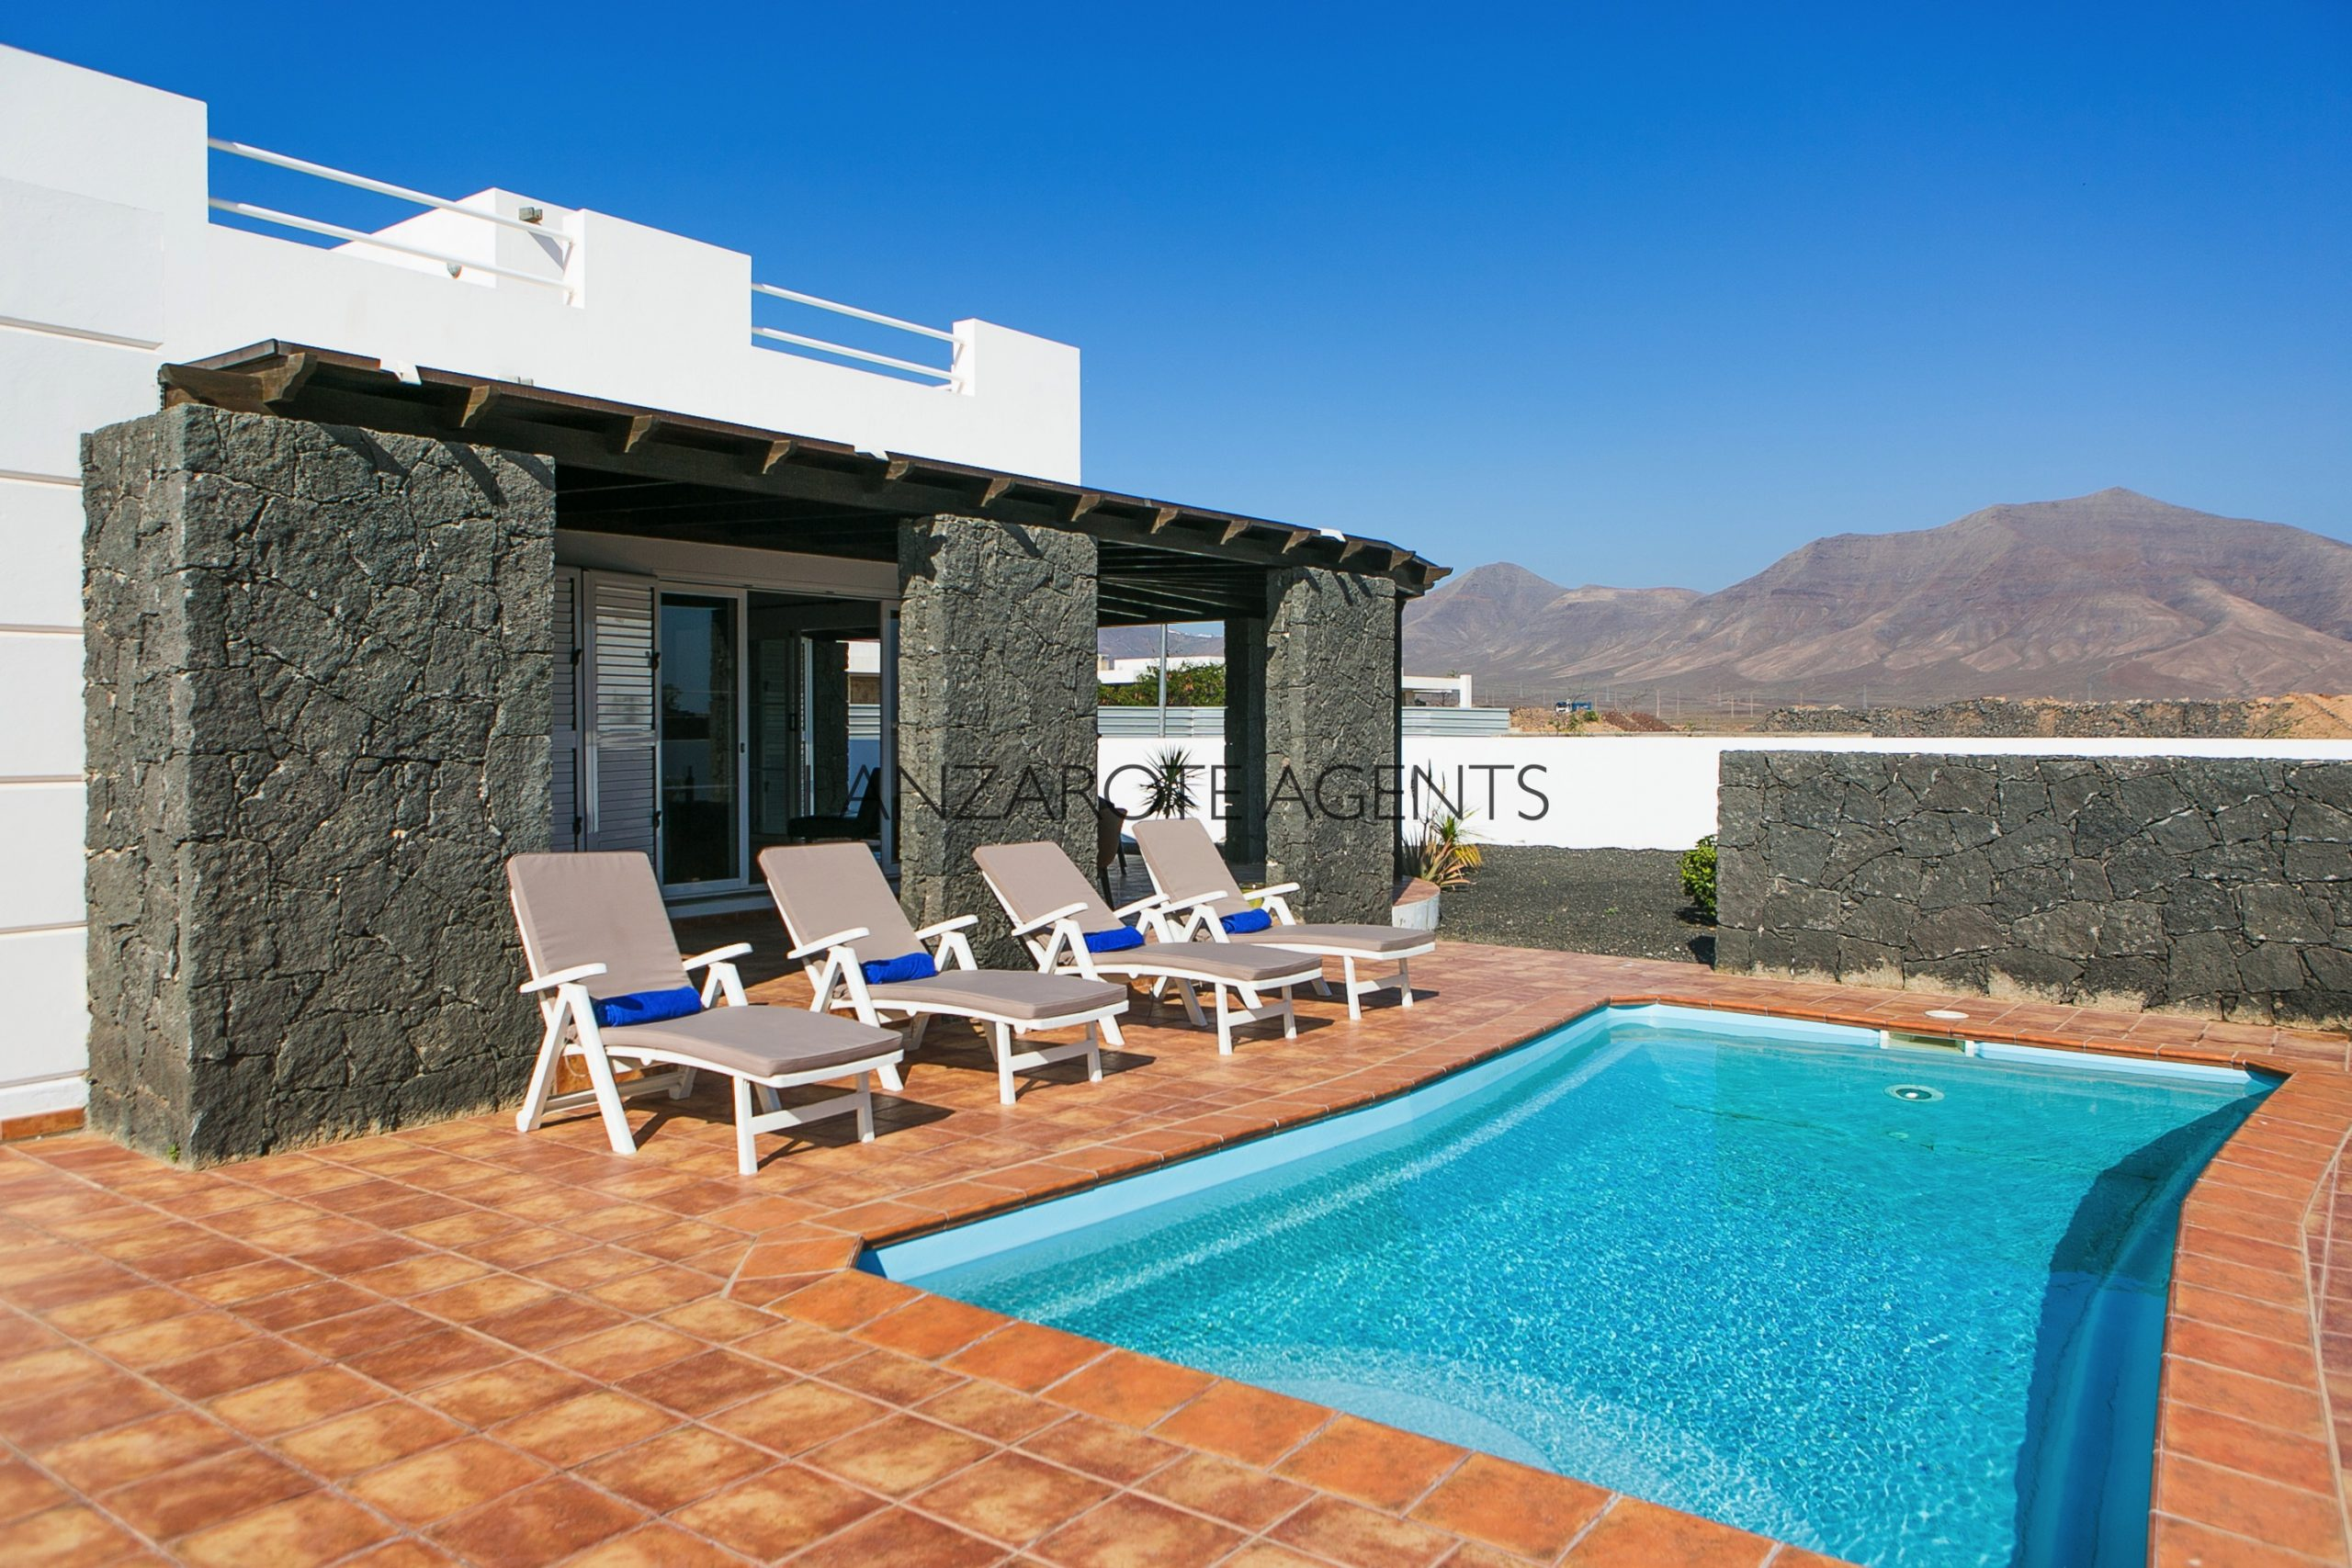 Fabulous 4 Bedroom Villa With Vv Tourist License and ready to continue the rental business